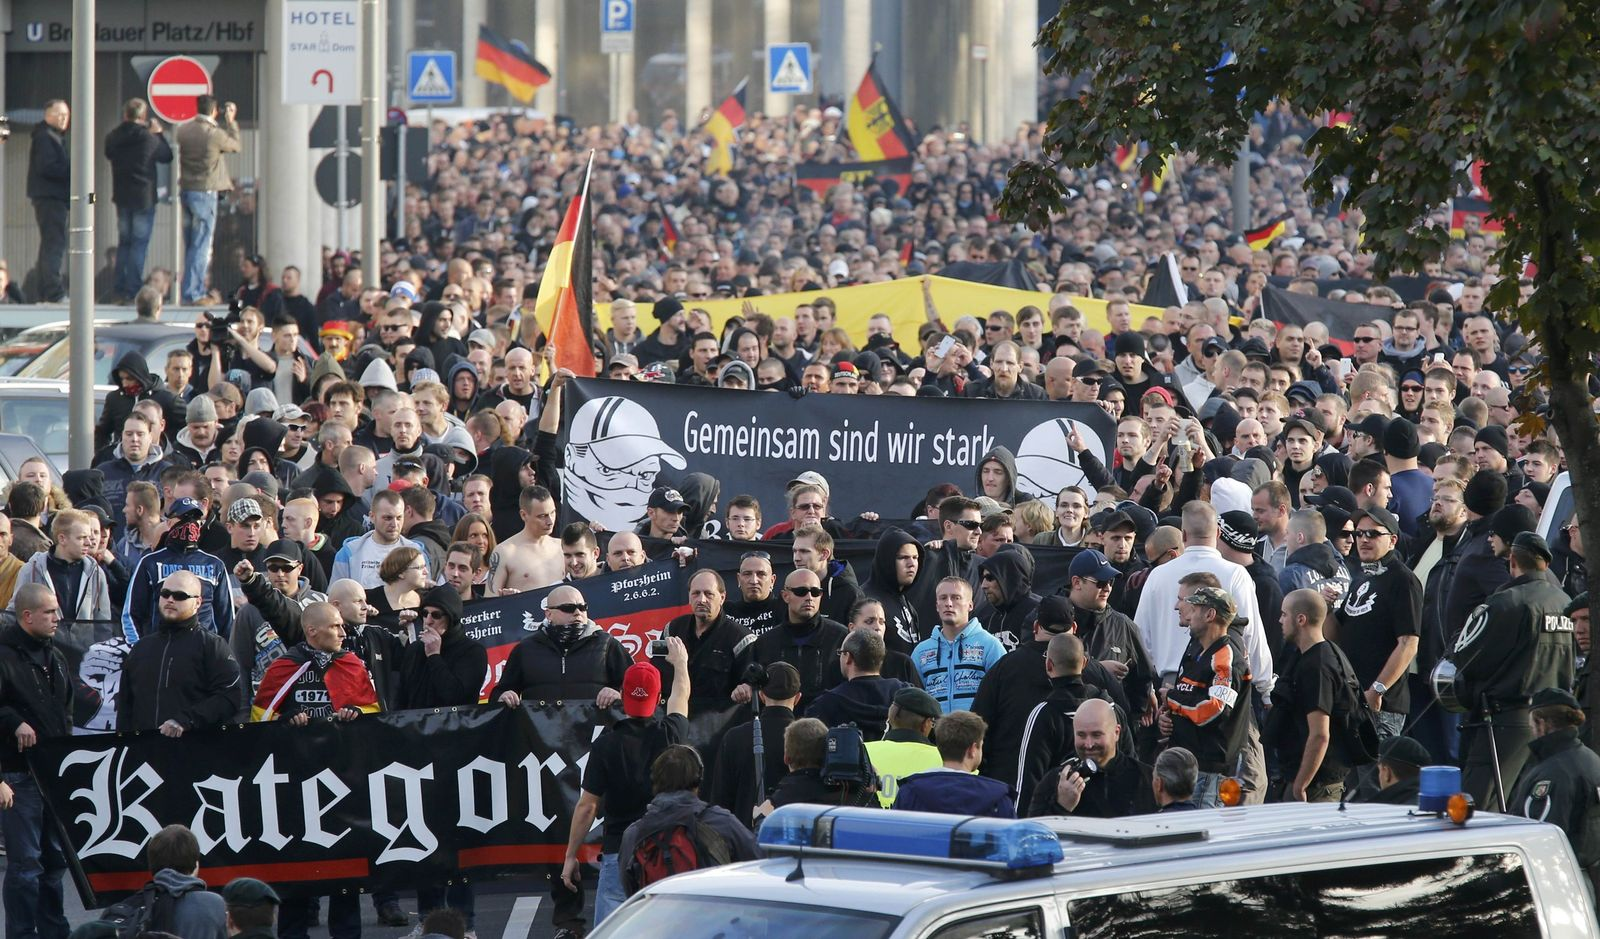 GERMANY-PROTEST/